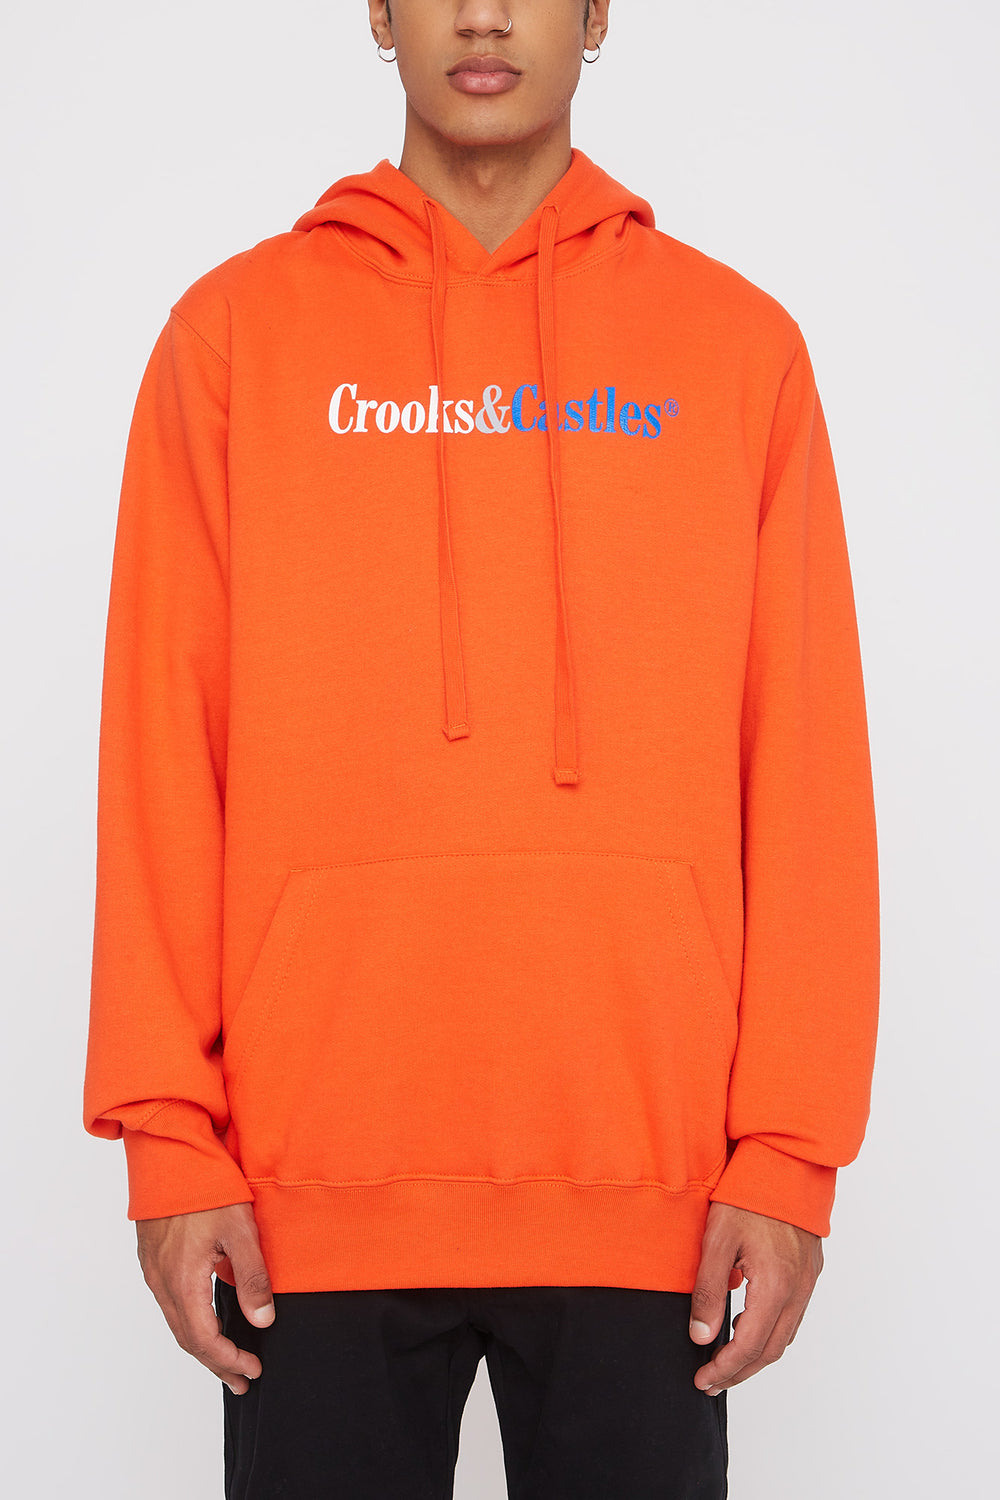 Crooks & Castles Mens Orange Hoodie Orange